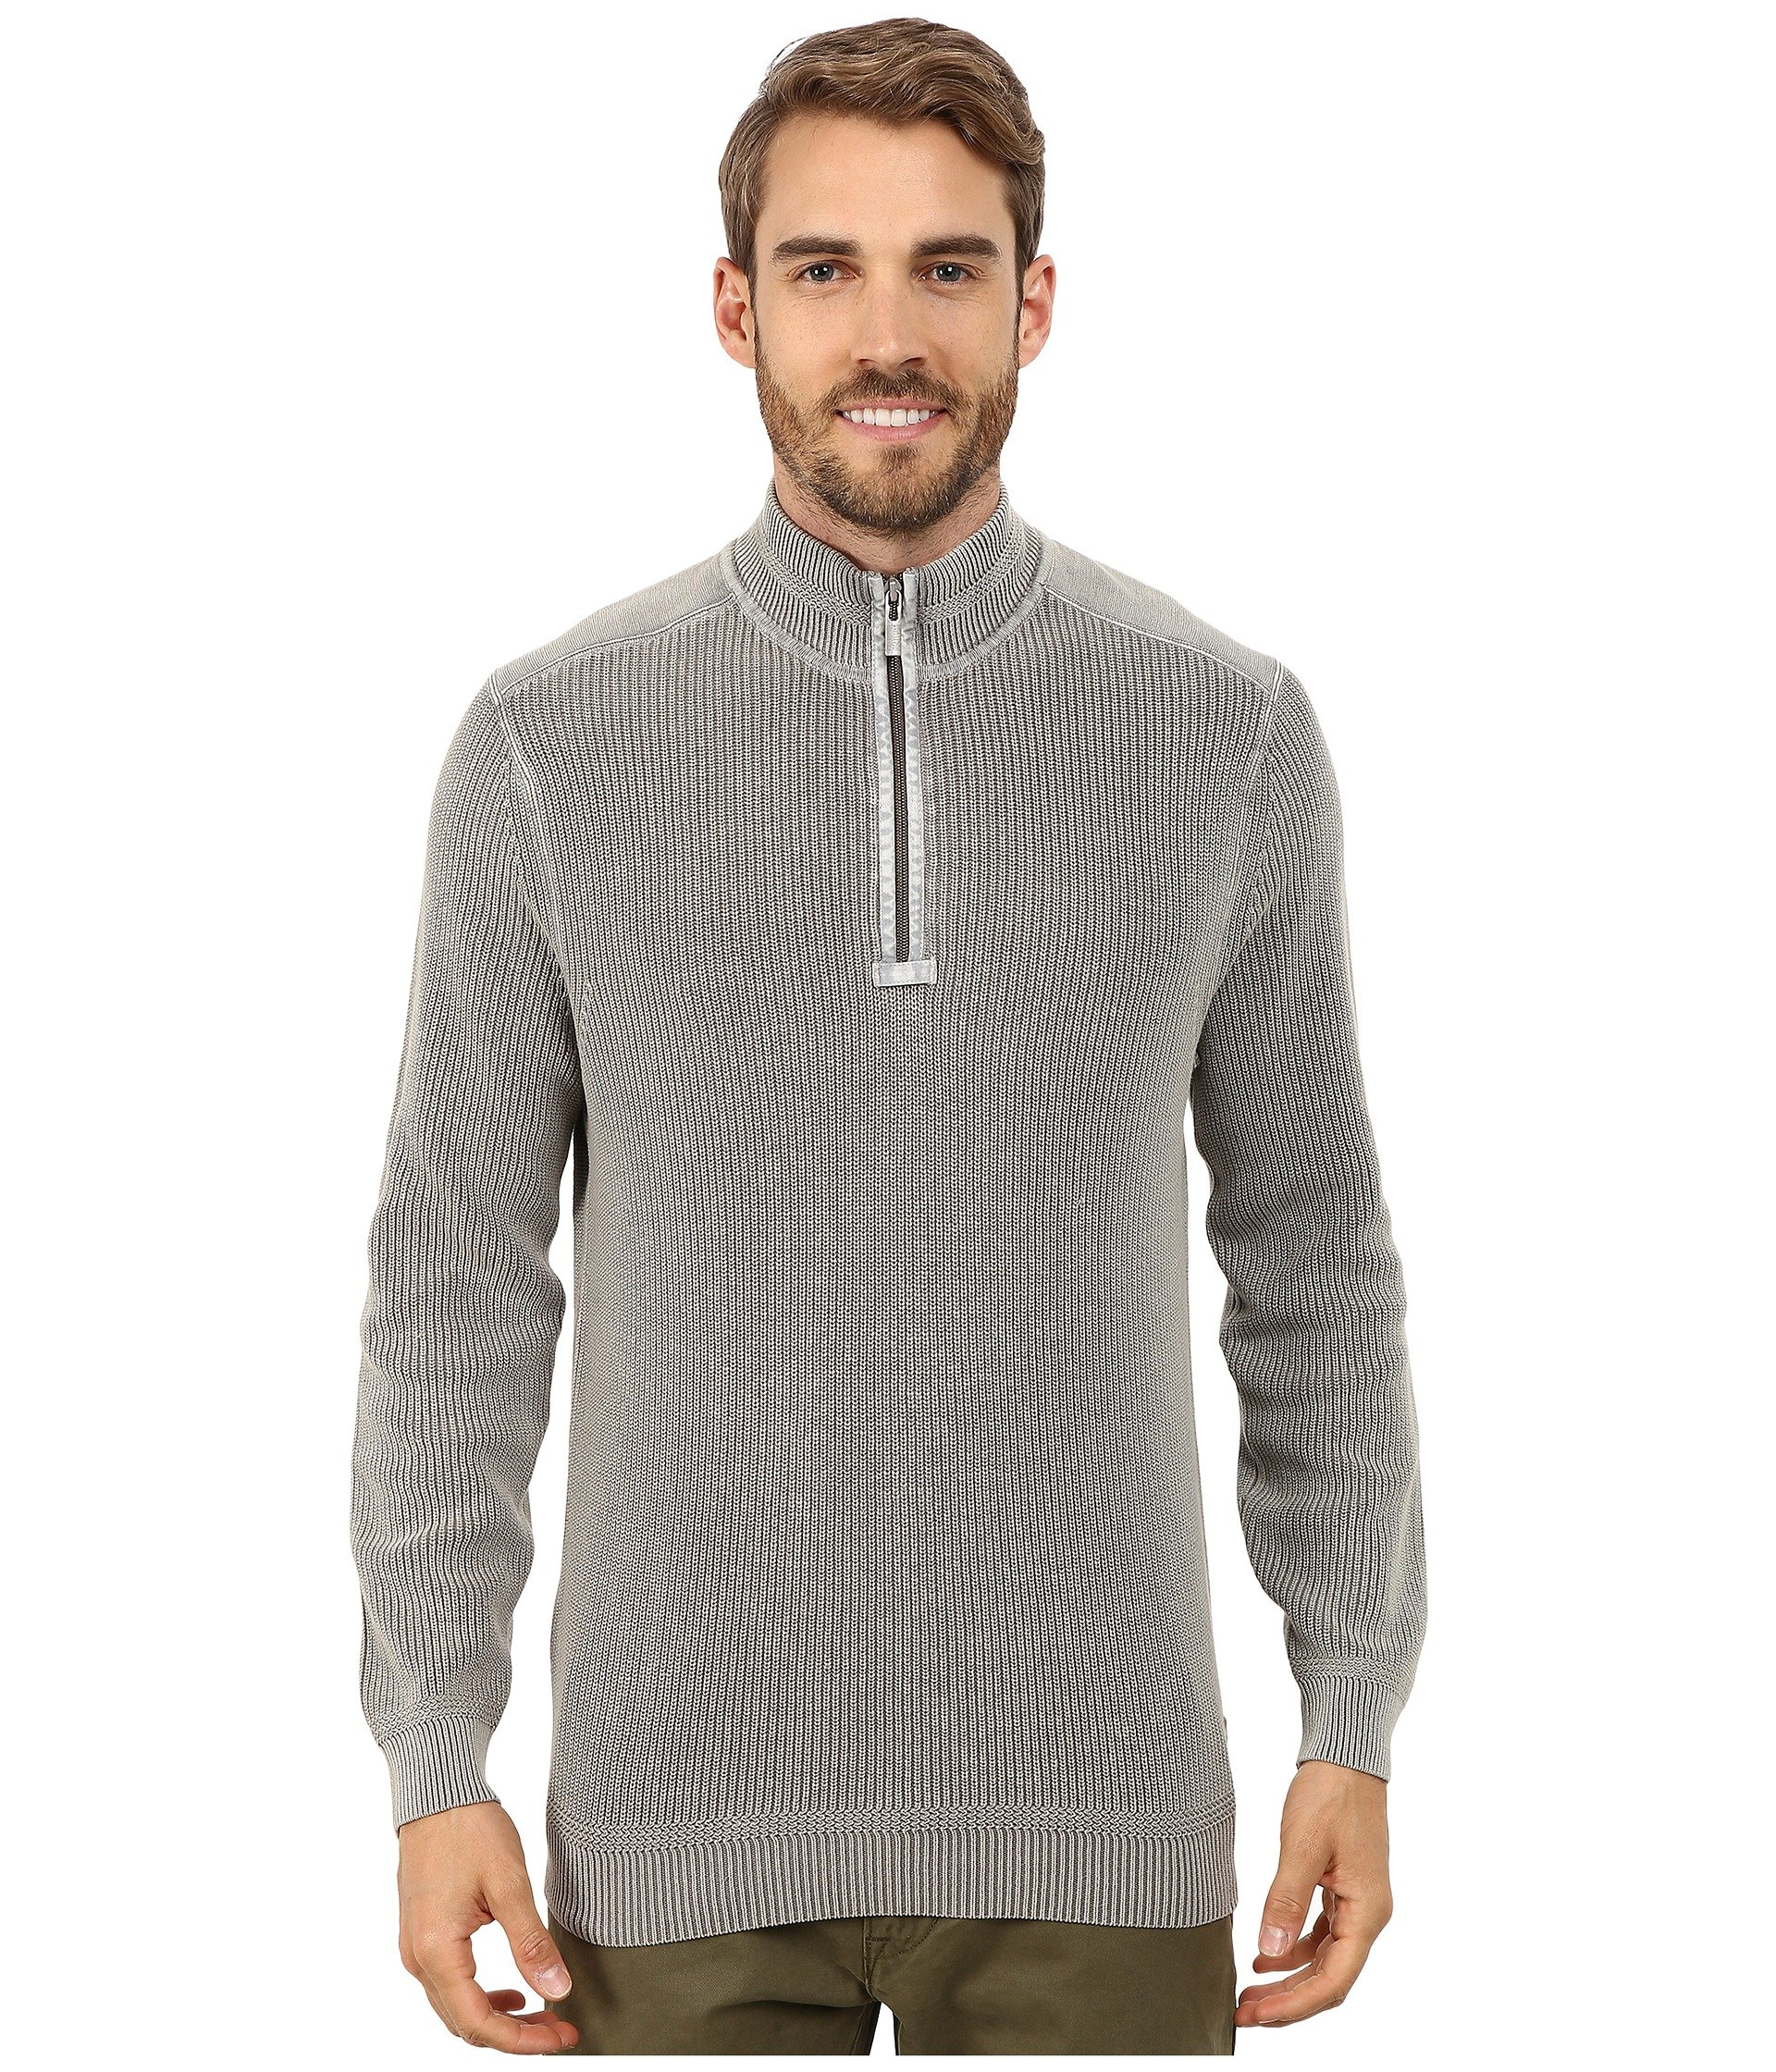 Sueter para Hombre Tommy Bahama New East River 1/2 Zip  + Tommy Bahama en VeoyCompro.net